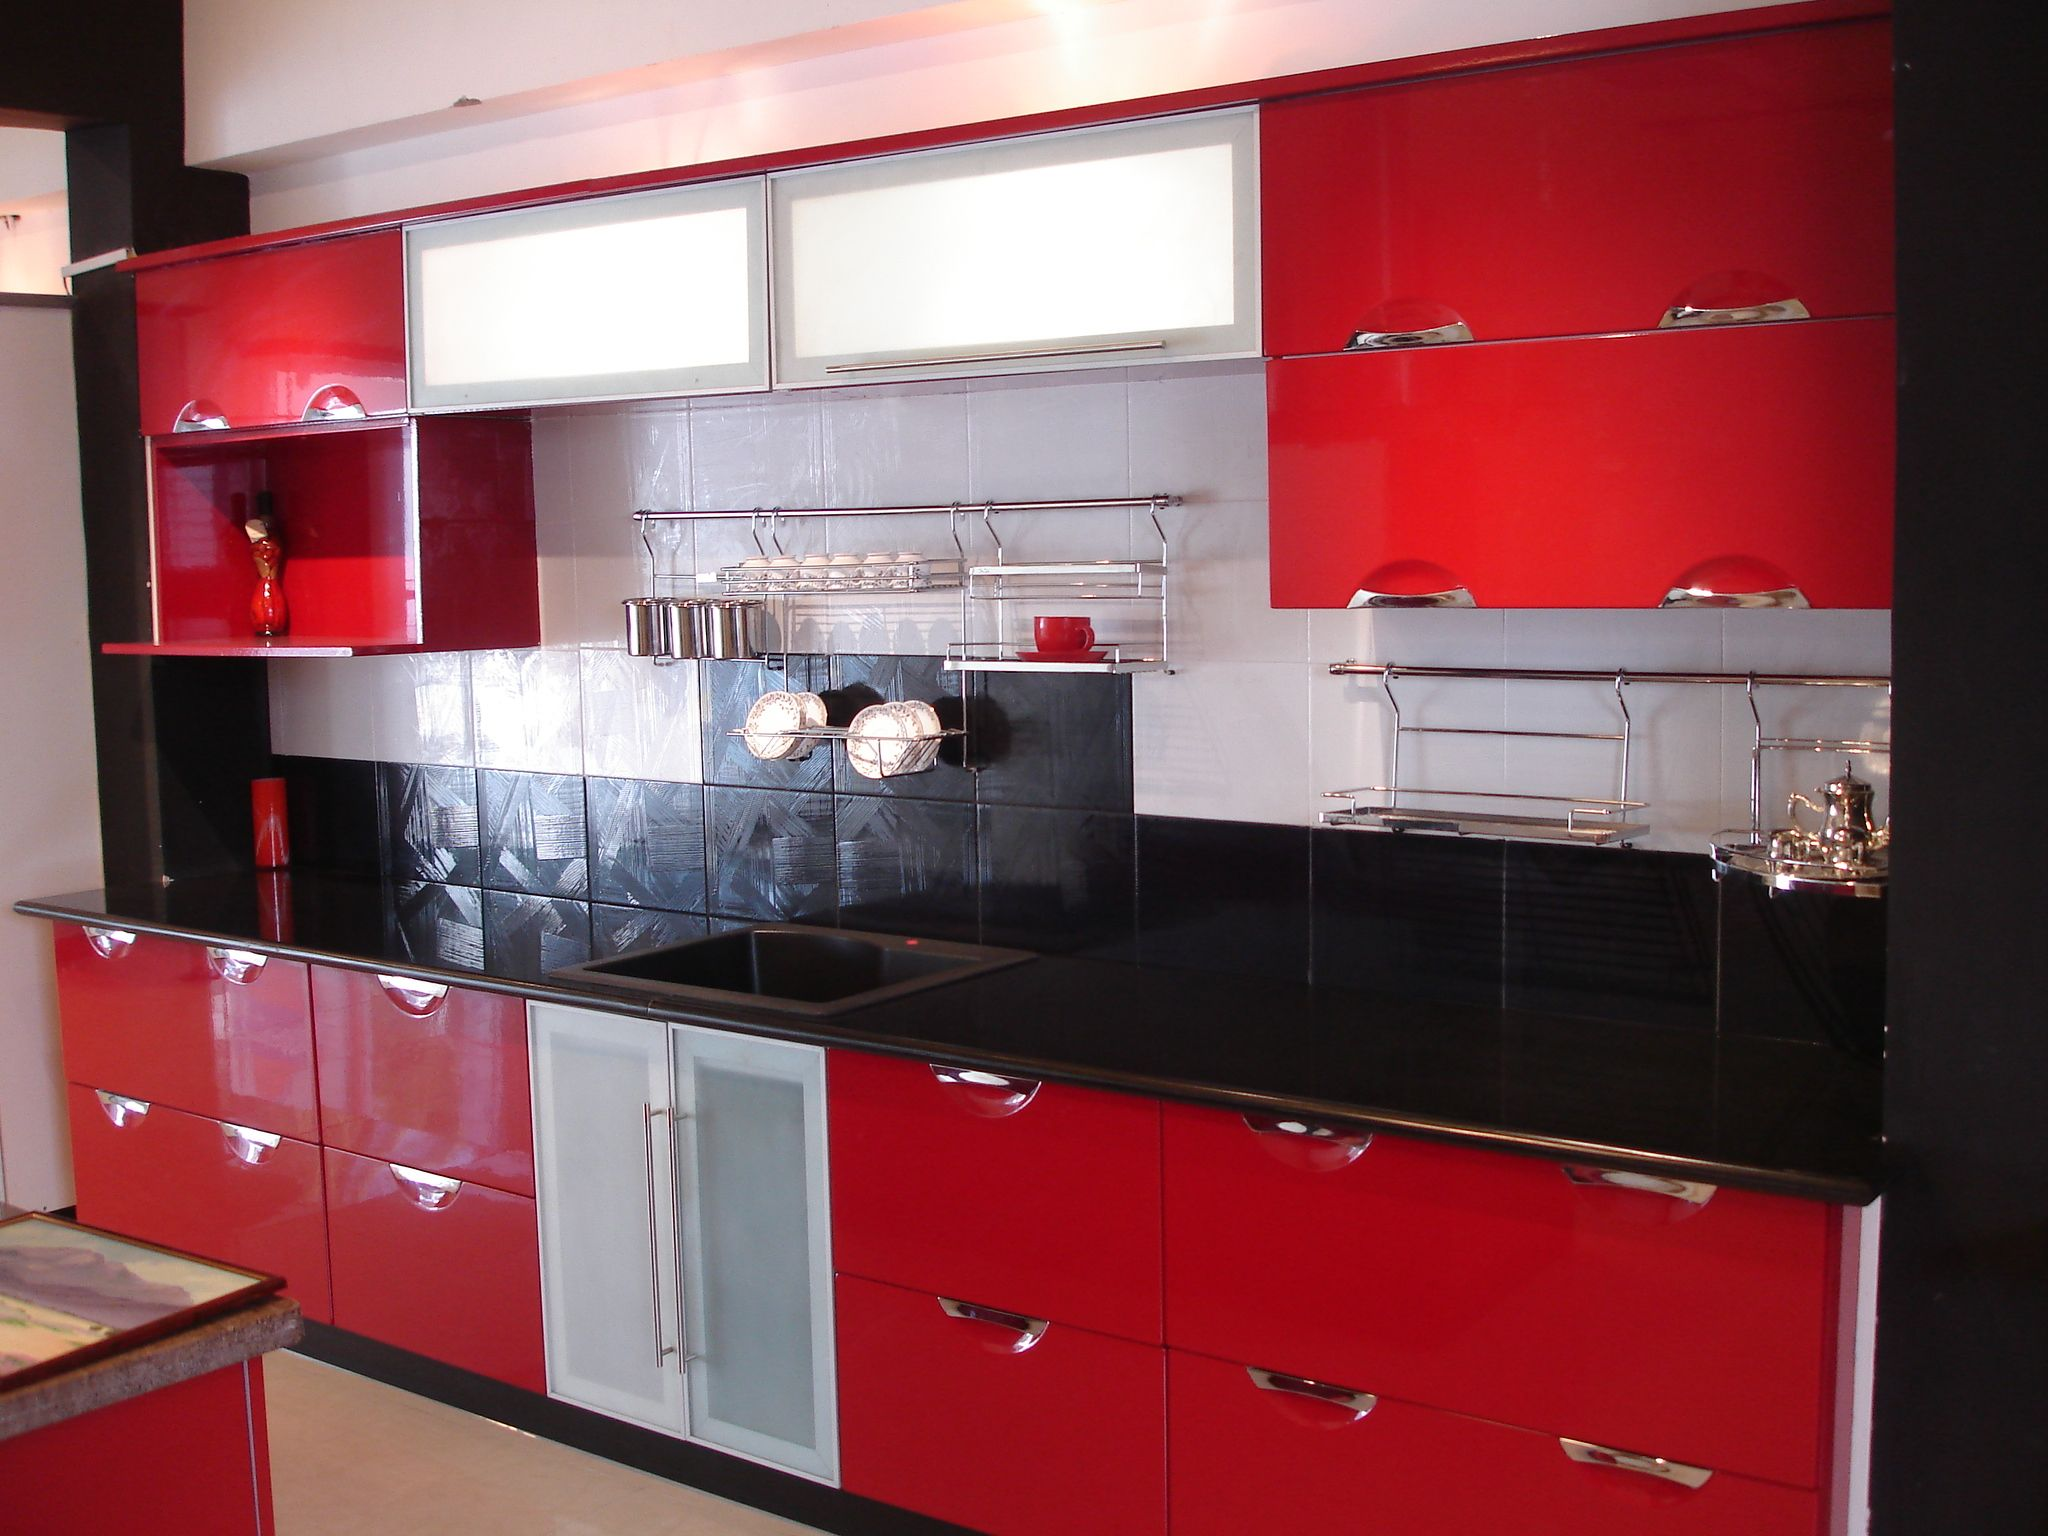 Charmant Elements Kitchens Offering Different Type Of Collections Like Kitchen Design  Bangalore, Modular Kitchen Bangalore, Modular Interior Designs, ...